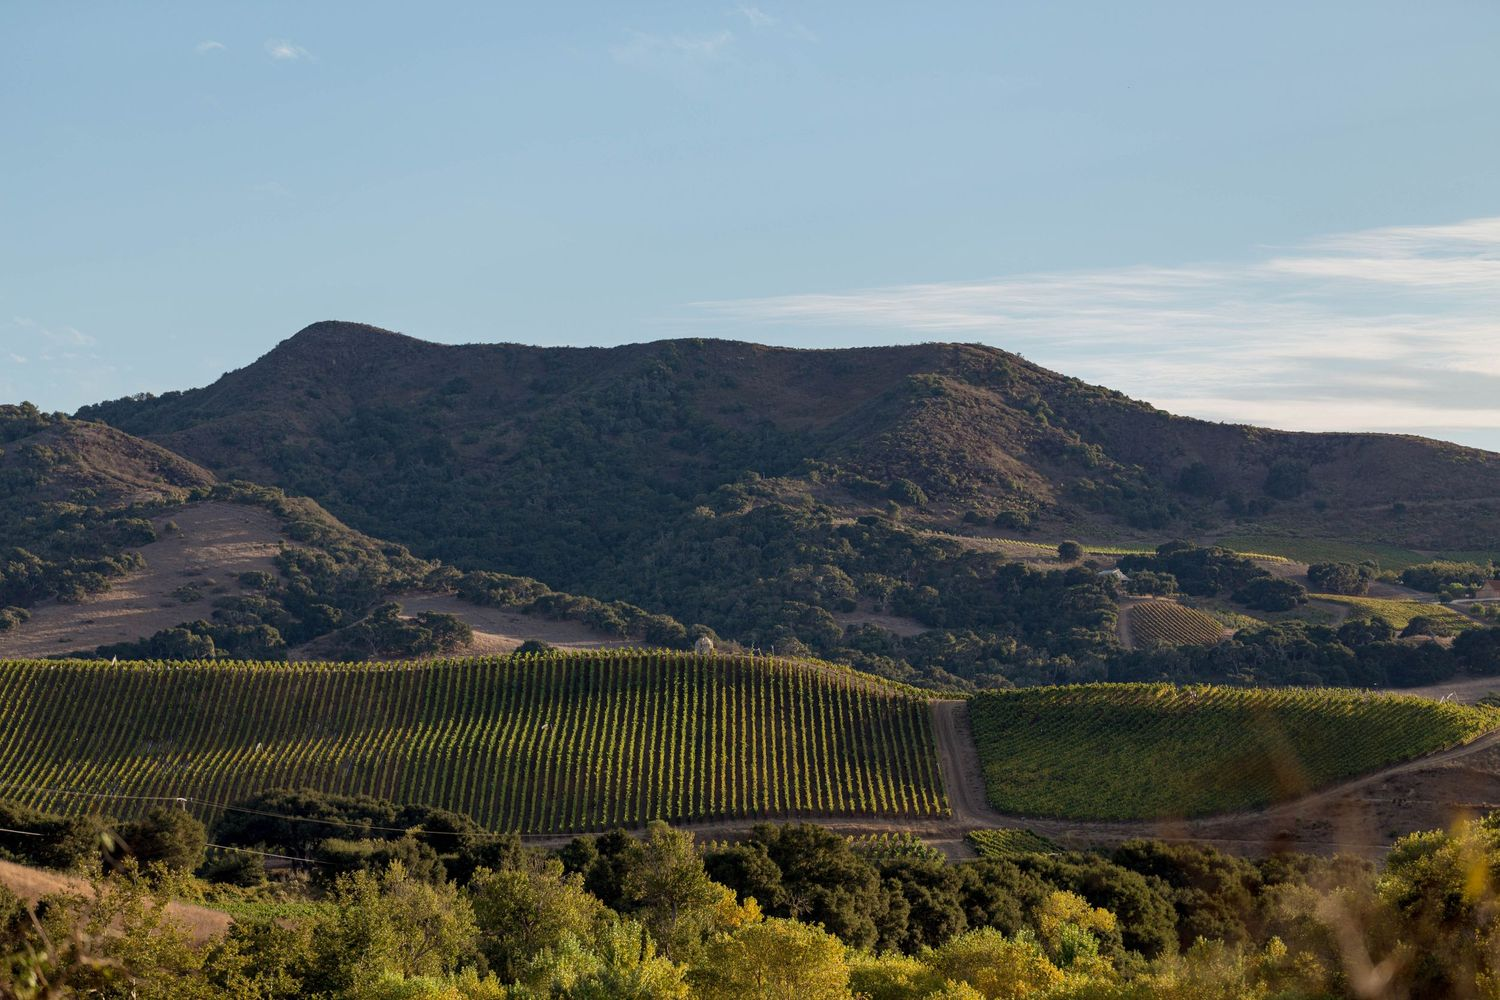 Landscape photo of Peake Ranch Vineyard in Buellton, California by Heather Daenitz of Craft & Cluster, Wine Photographer